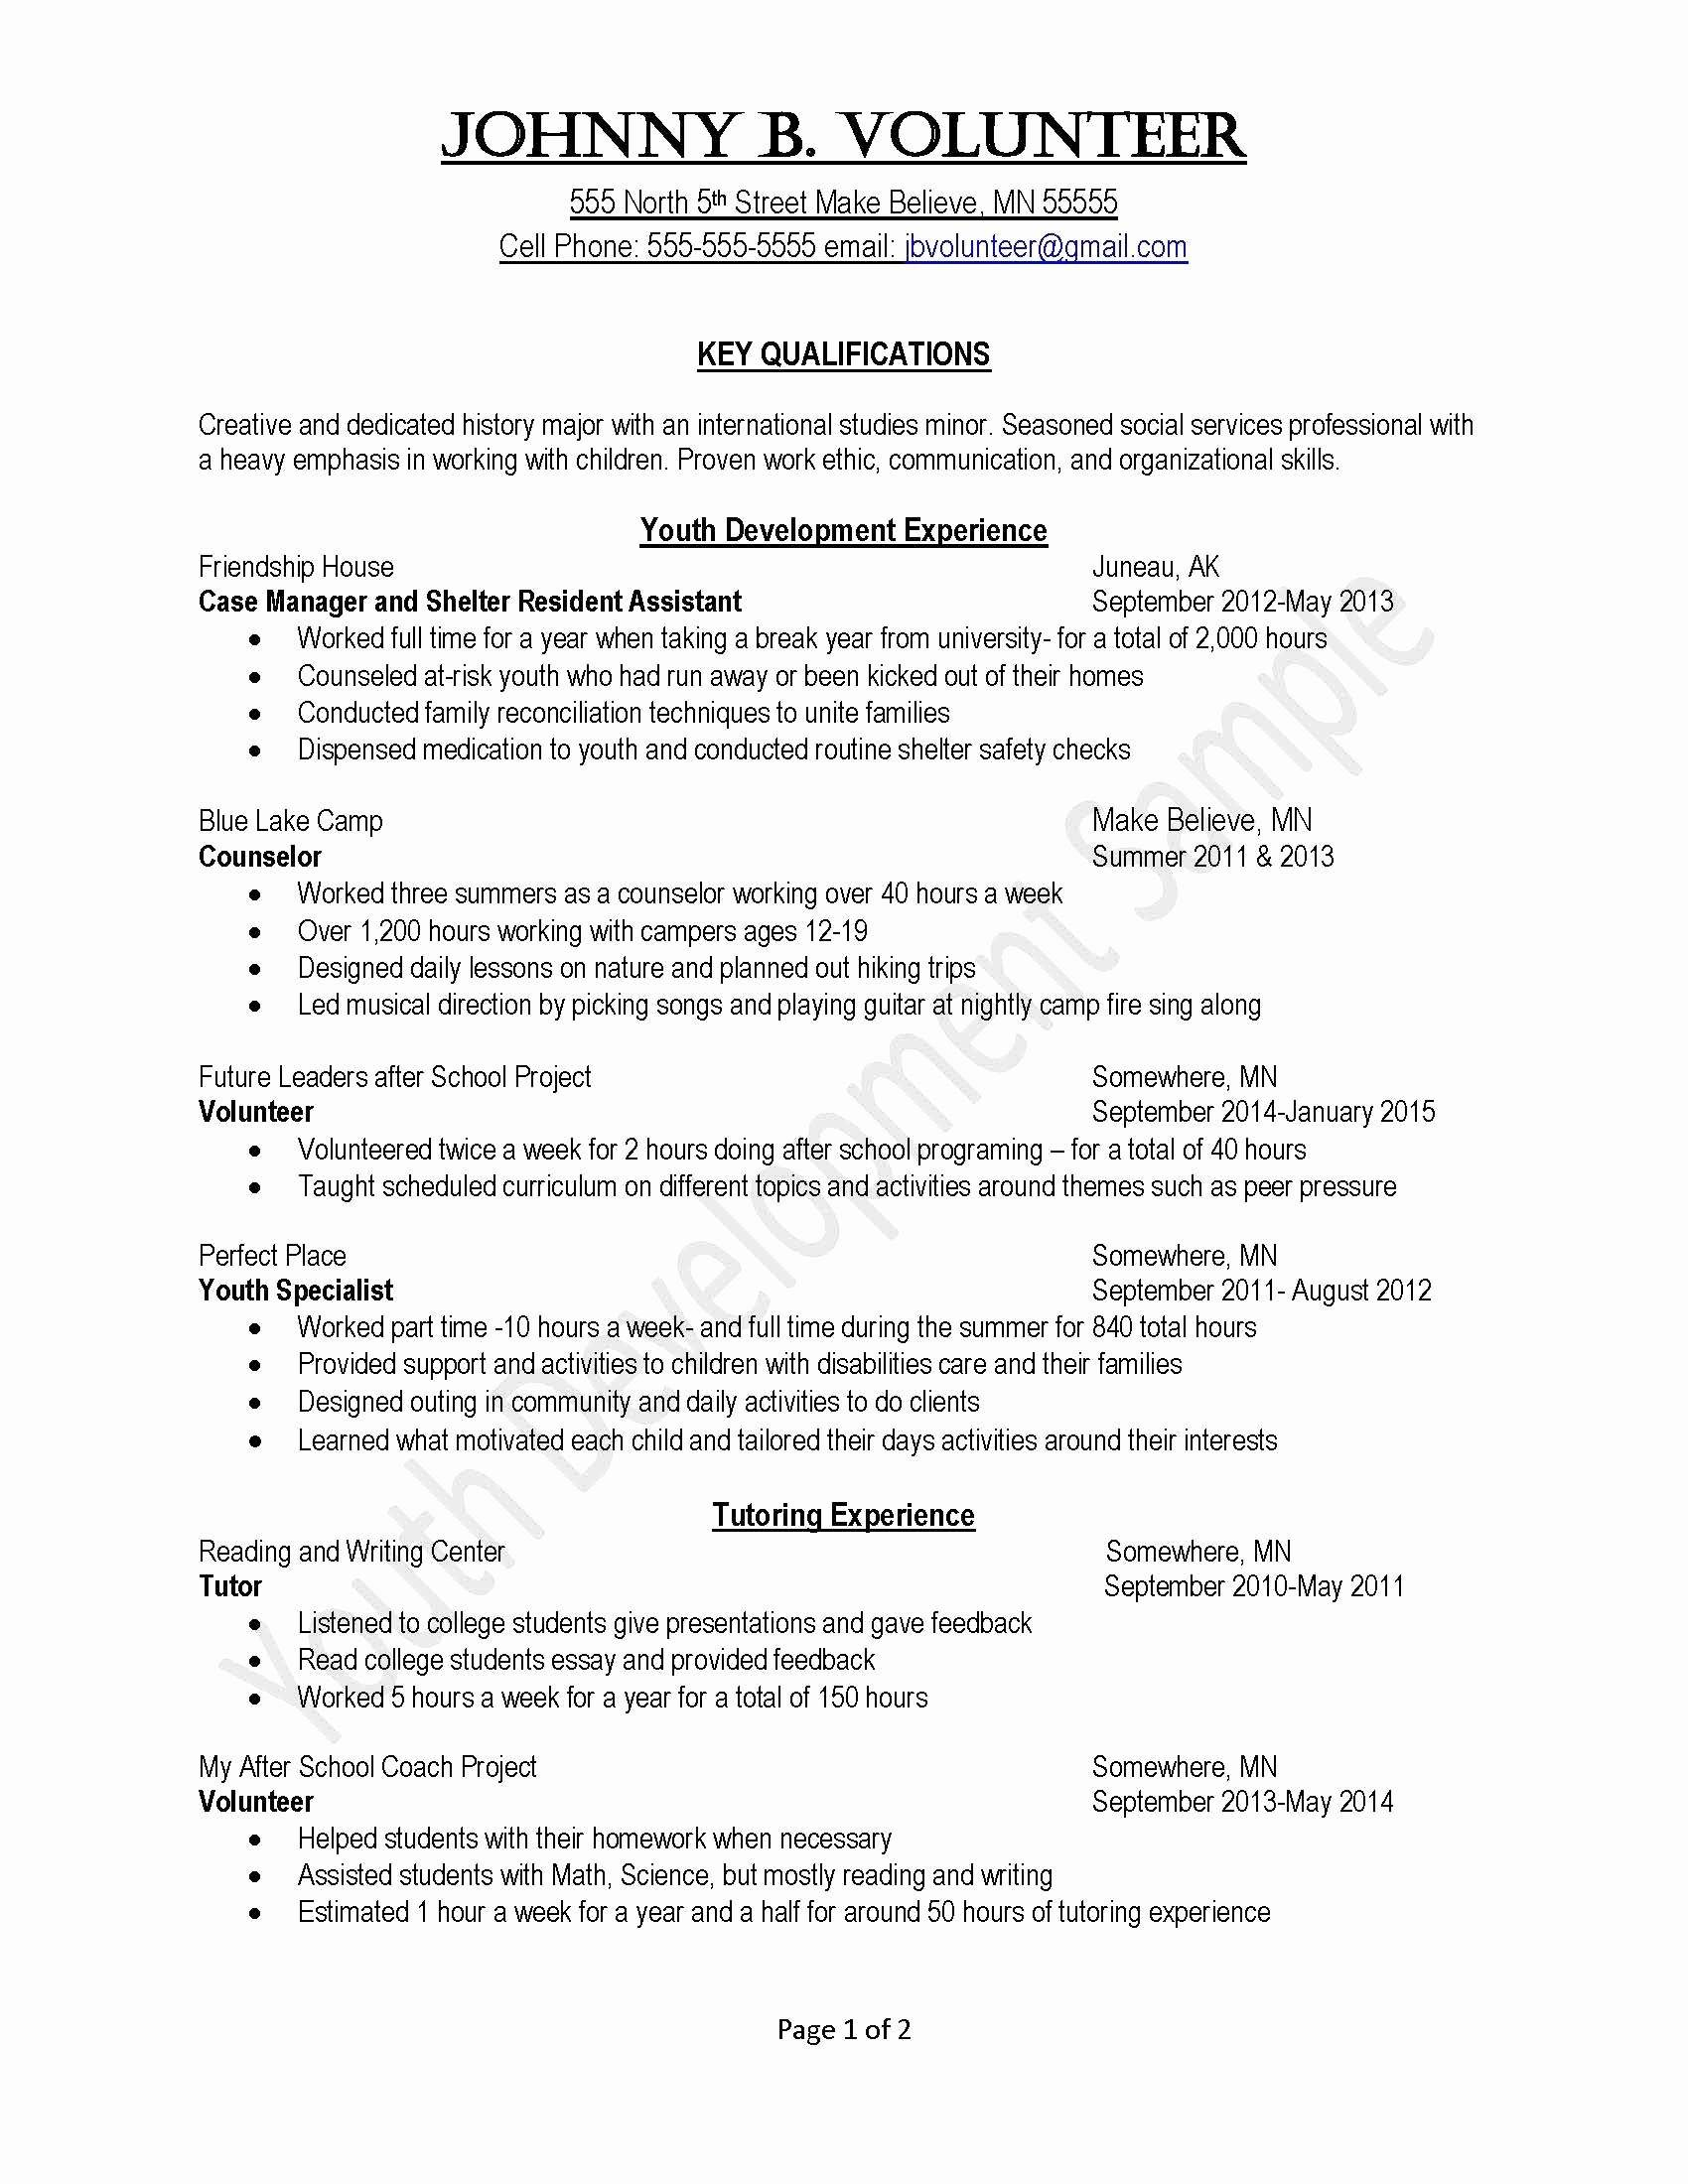 fast food resume objective Collection-Fast Food Resume Objective 18 Fast Food Resume Objective 14-c